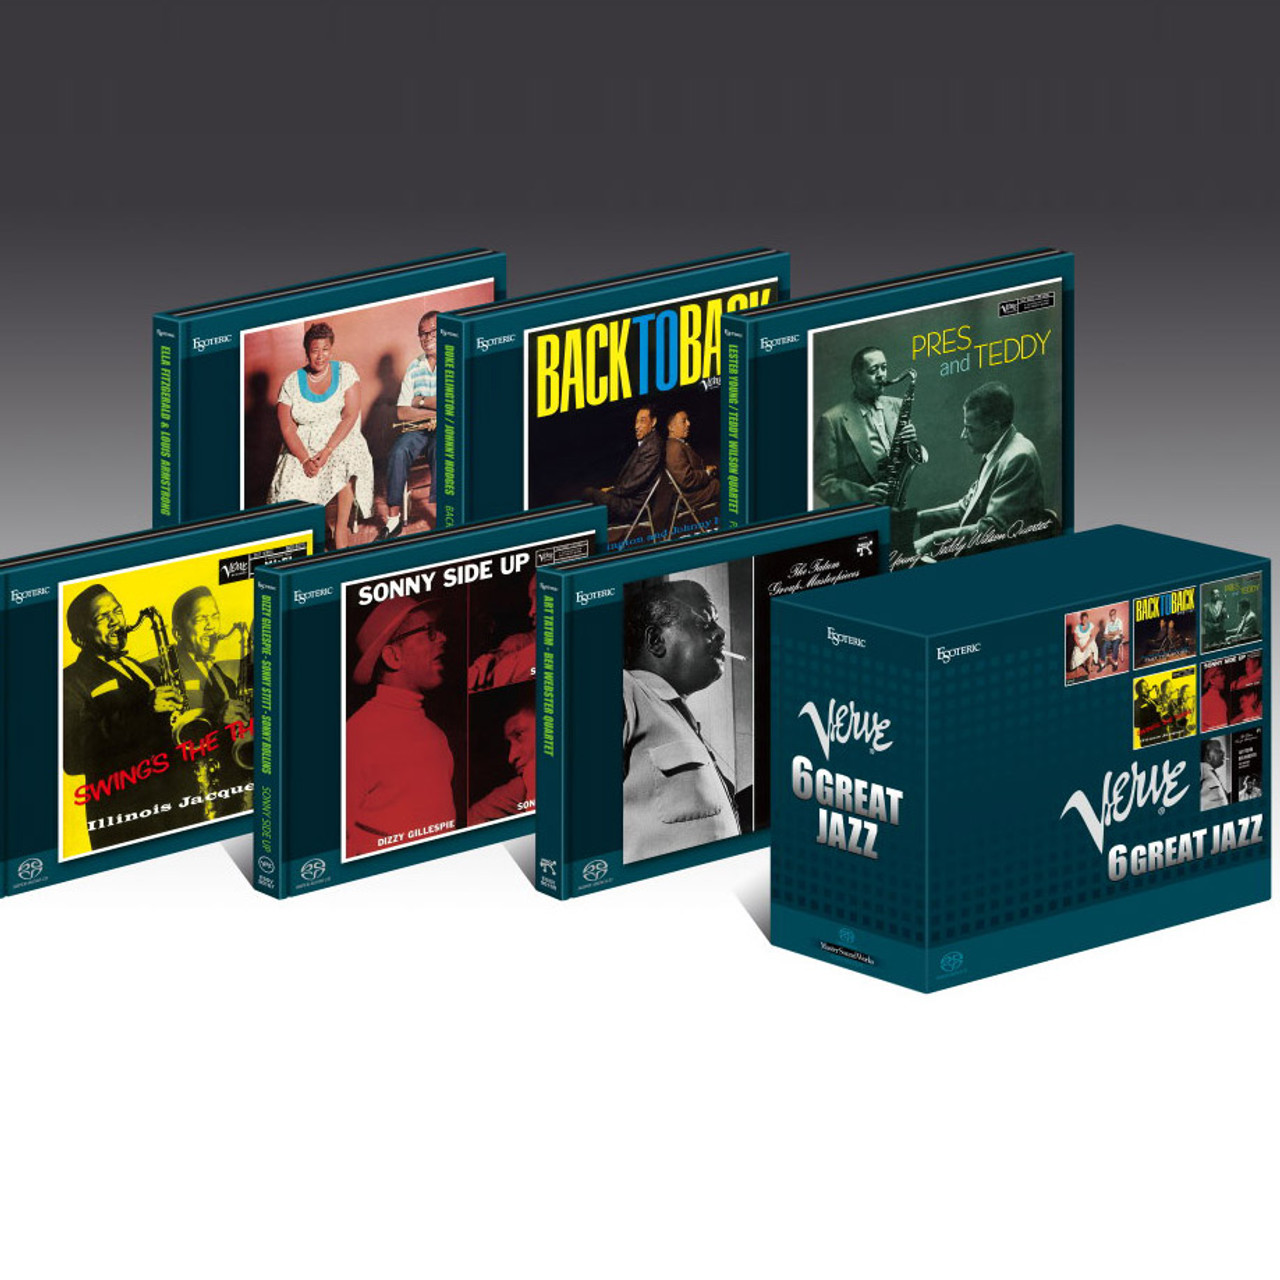 Esoteric Verve 6 Great Jazz SACD collection